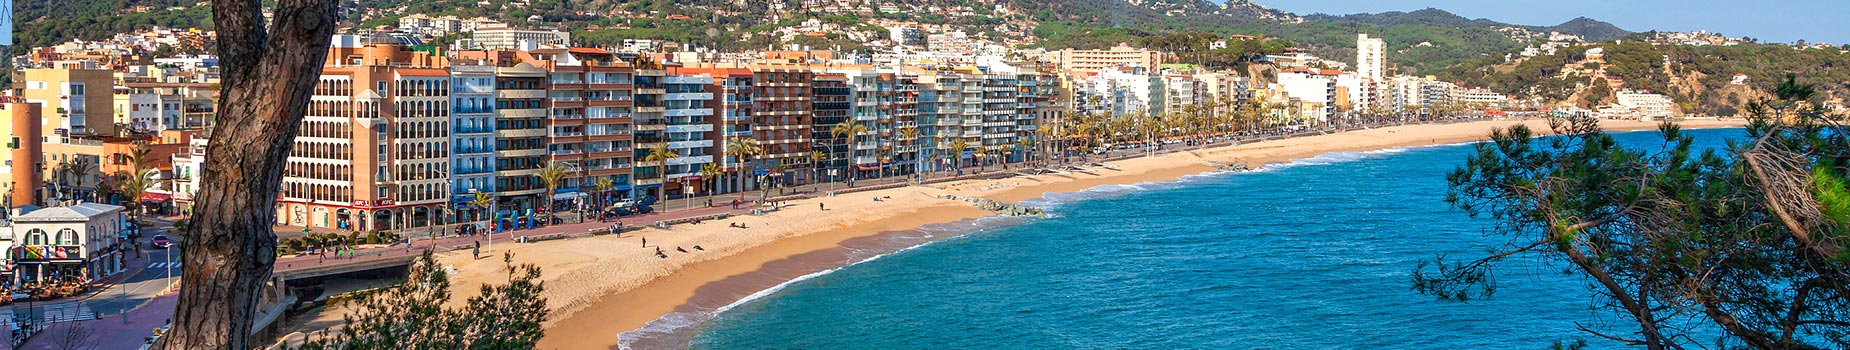 All Inclusive Lloret de Mar